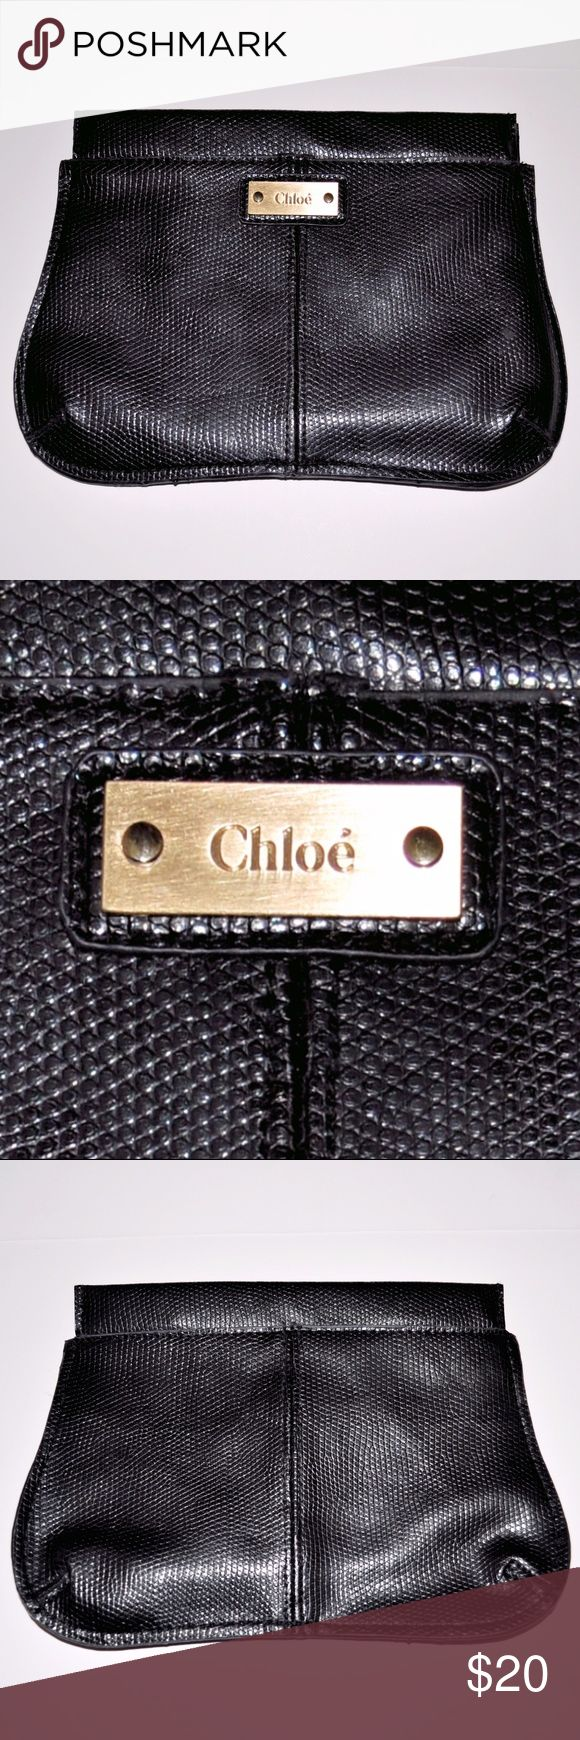 """Chloé Parfum Bag Clutch Authentic Chloé Bag or Clutch in Black Snakeskin like Texture. Magnetic Closure across the top. Signature Chloé nameplate on exterior and Chloé Parfum embossed interior tag. Perfect to use as evening clutch, makeup bag, or coin purse. Never been used, excellent condition!  Length is 9"""", Height is 5"""", Width is 7"""". Chloe Bags Clutches & Wristlets"""